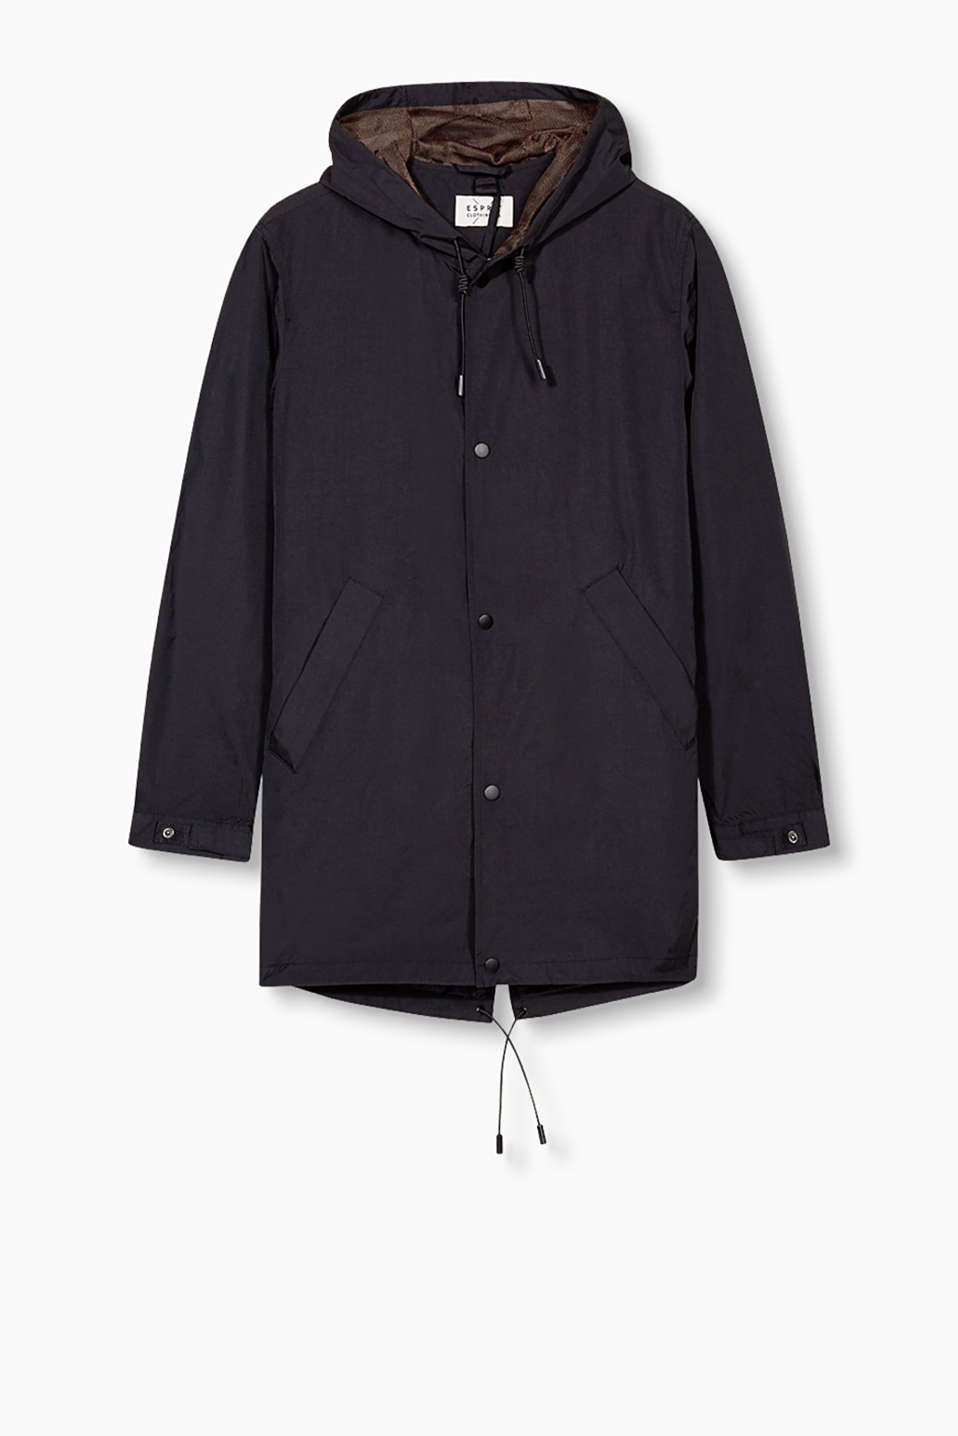 Windcheater with a removable zip pocket and press studs